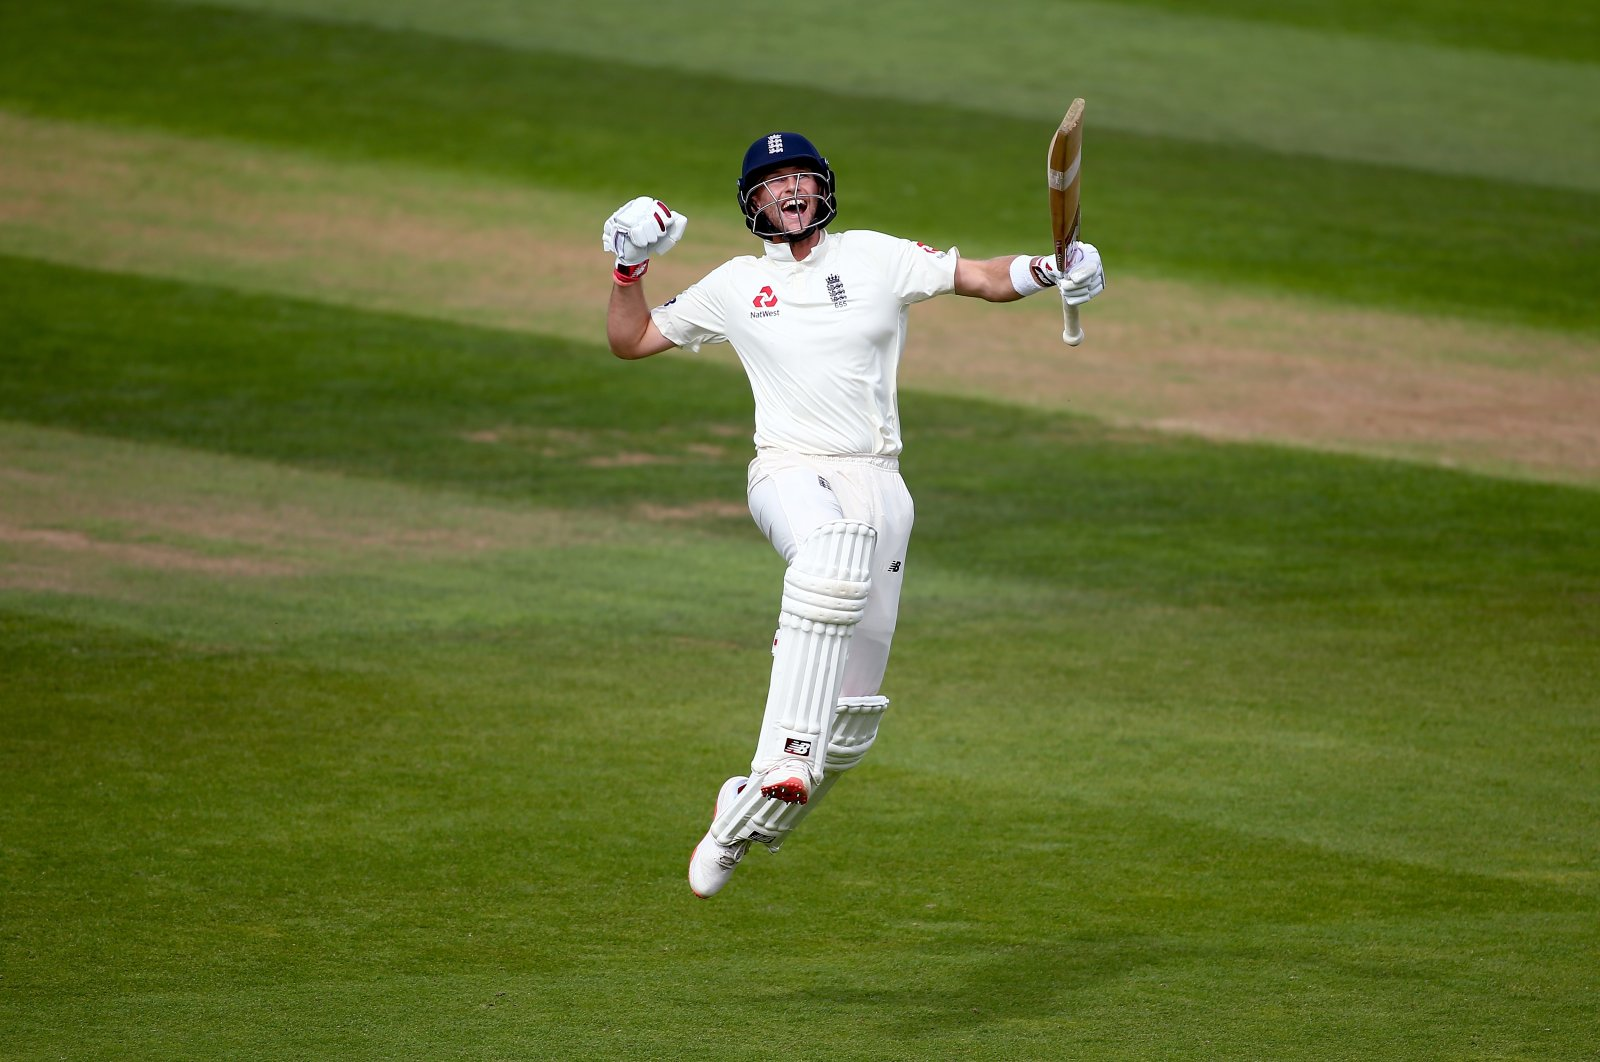 England's Joe Root celebrates his century during day four of the fifth Test match between England and India at the Kia Oval in London, England, Sept. 10, 2018. (Getty Images)